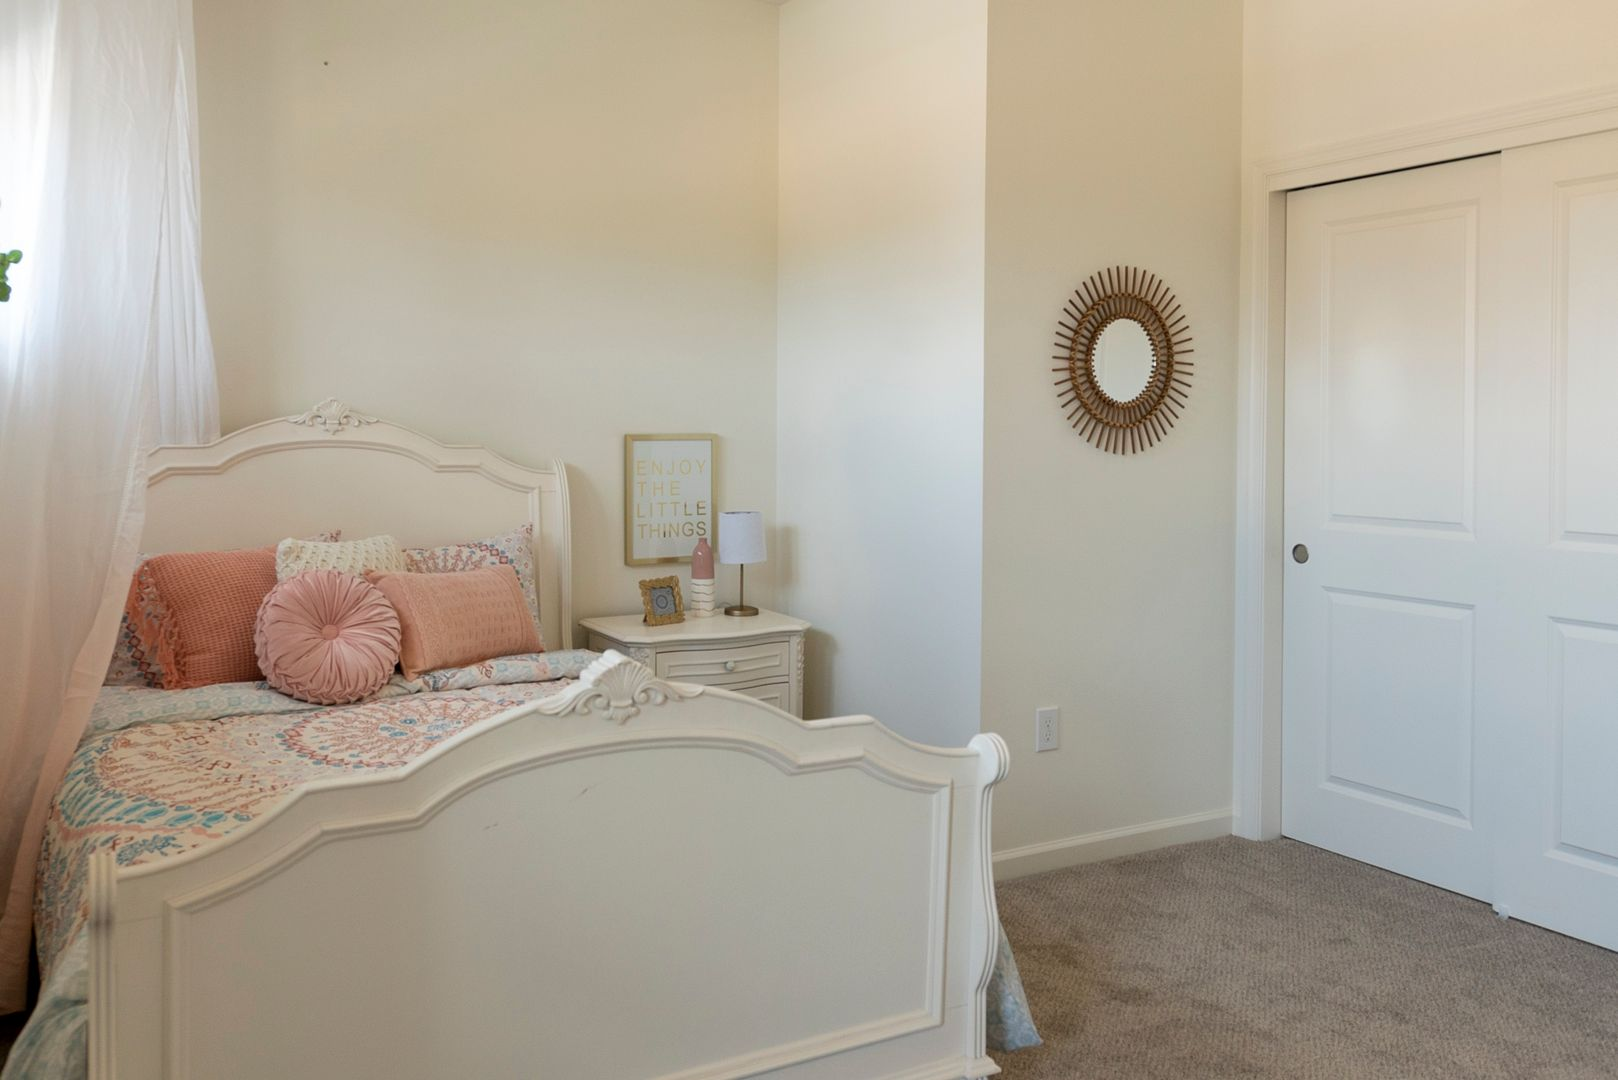 Bedroom featured in the Vynecrest Cottage By Tuskes Homes in Allentown-Bethlehem, PA